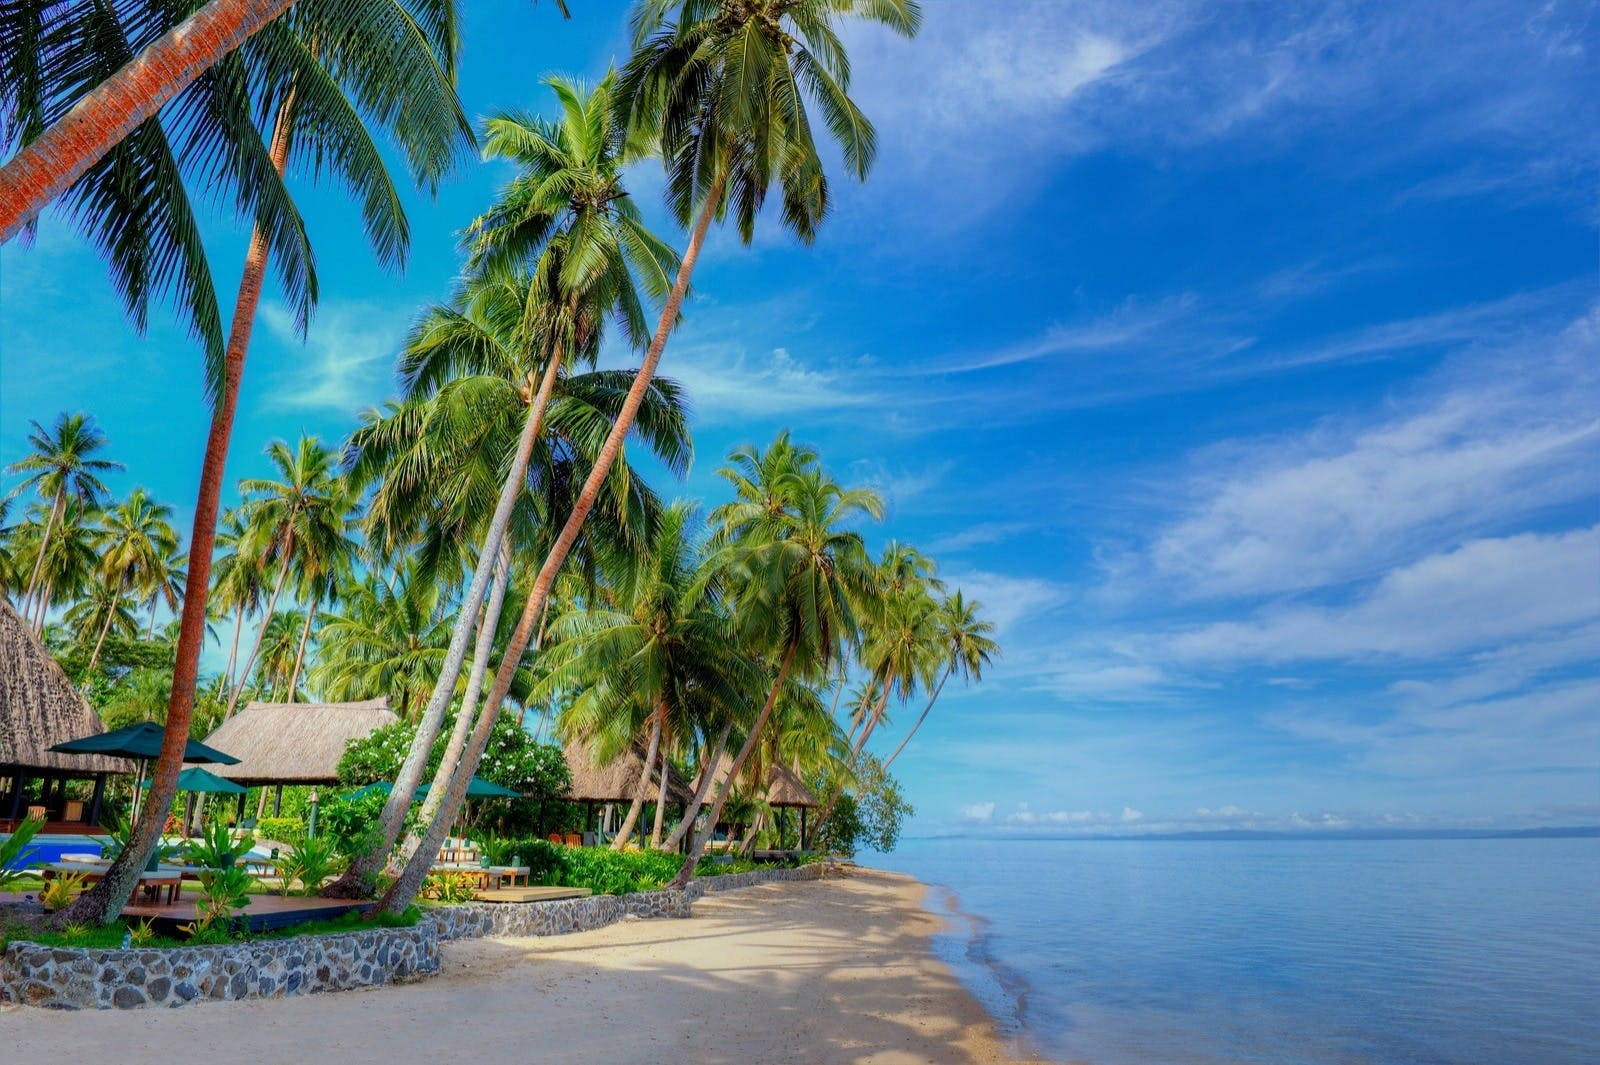 Beach View at Jean-Michel Cousteau Resort, Fiji